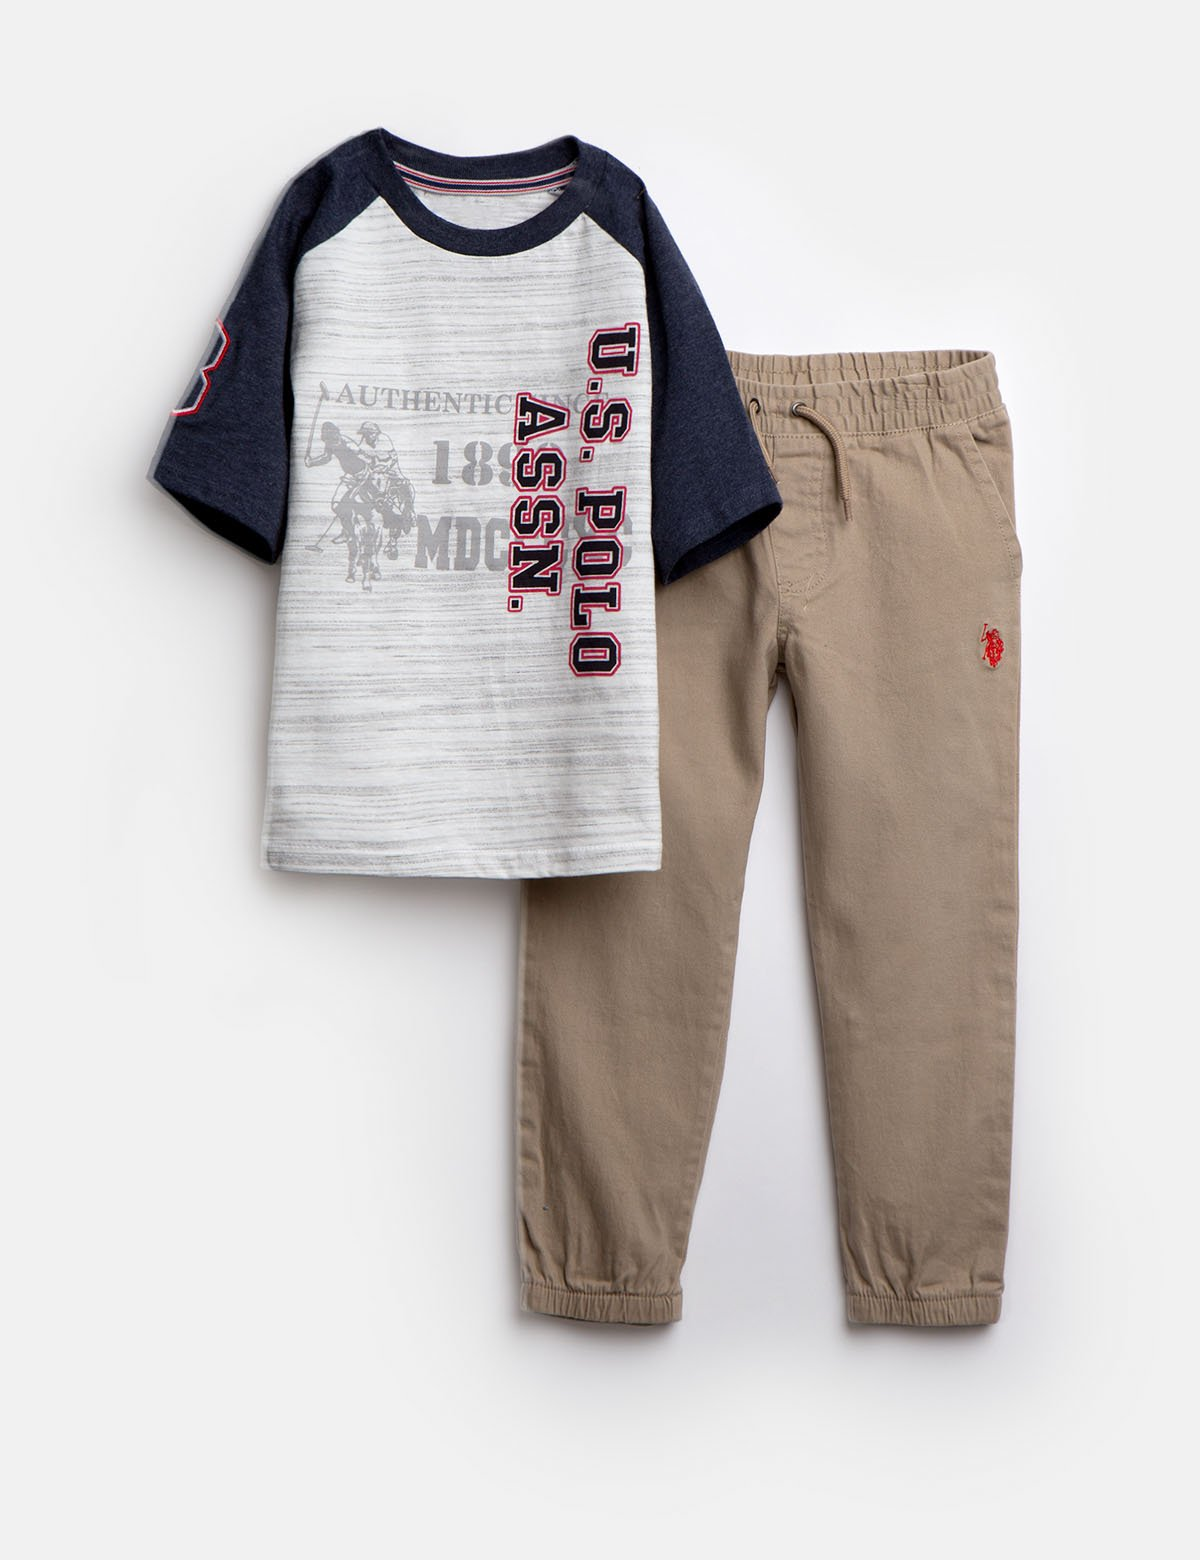 Size 5//6 Boys 3-Piece Fashion Knit Top and Pant Set U.S Charcoal Twill Polo Assn